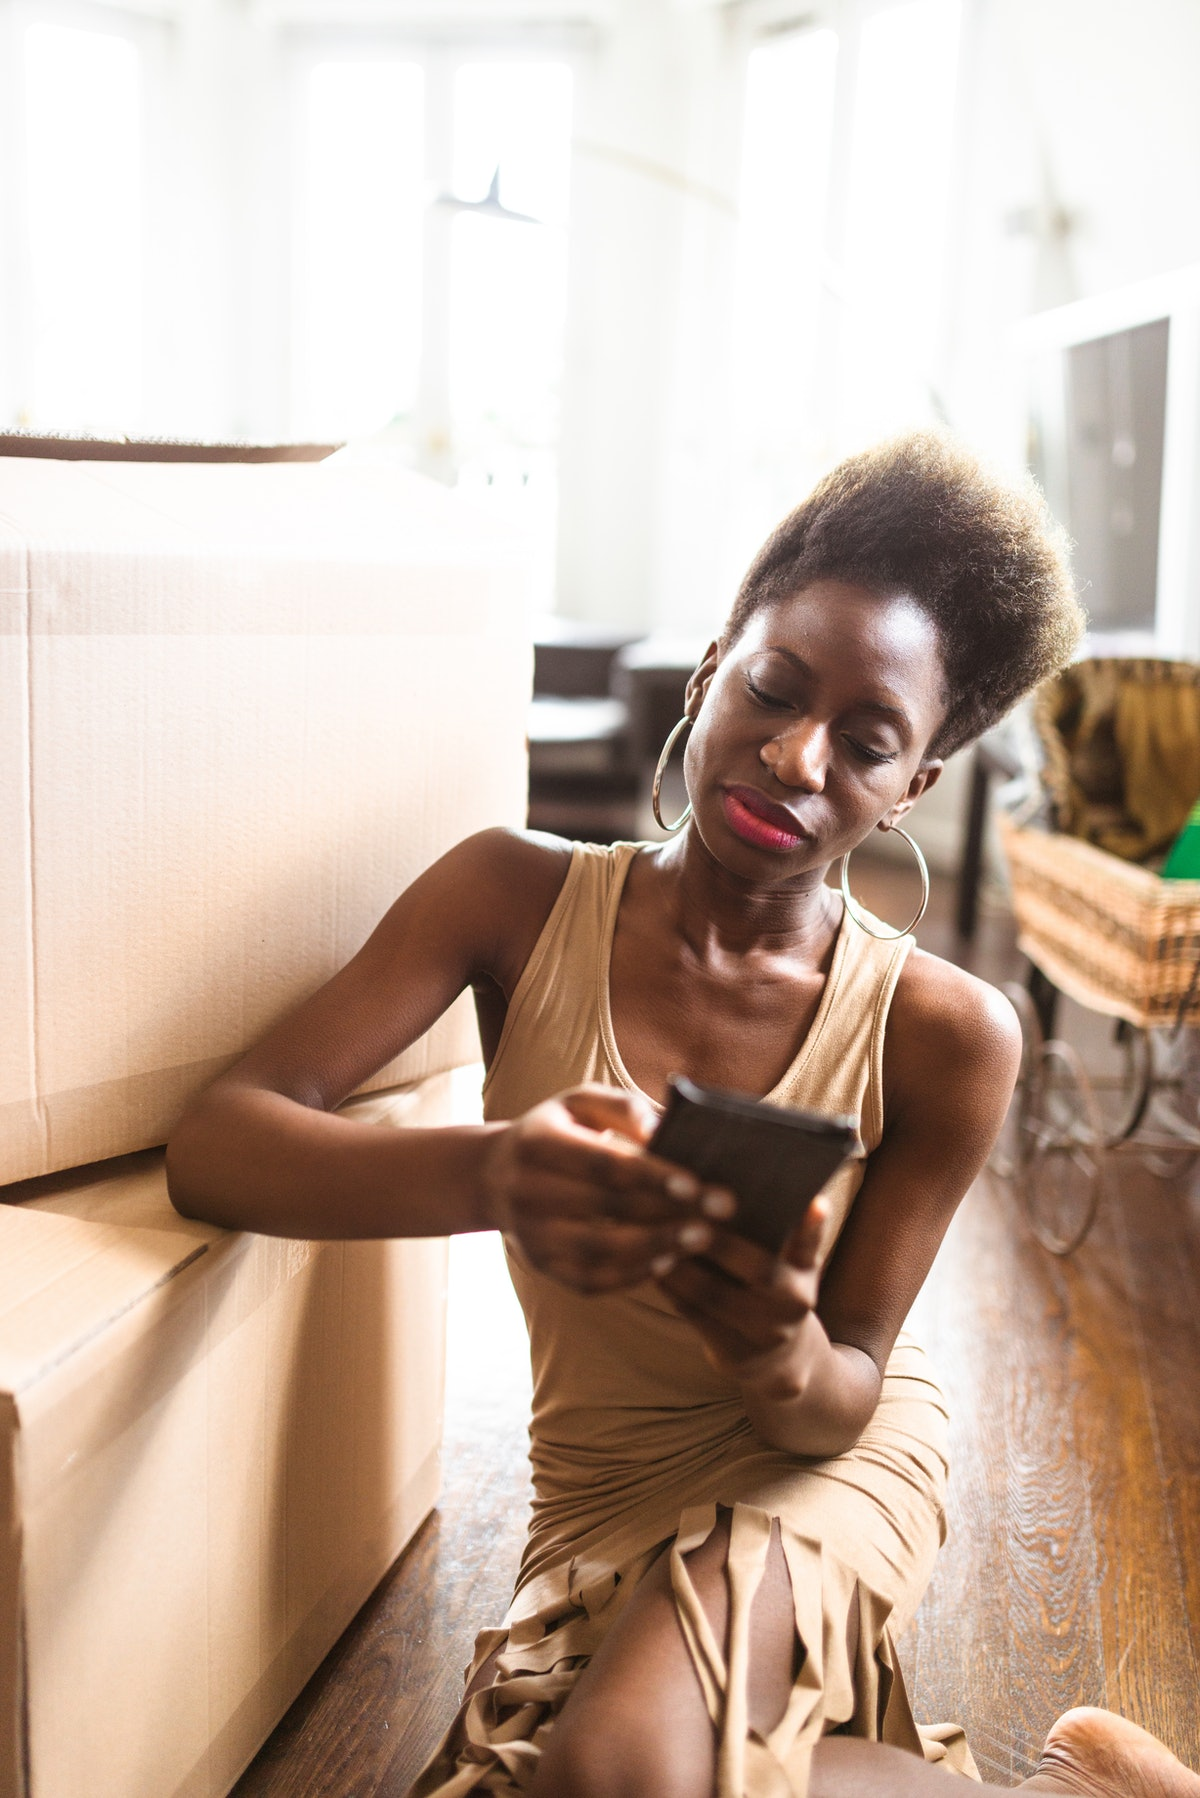 A young Black woman sits next to cardboard boxes on her apartment floor and texts on her phone.